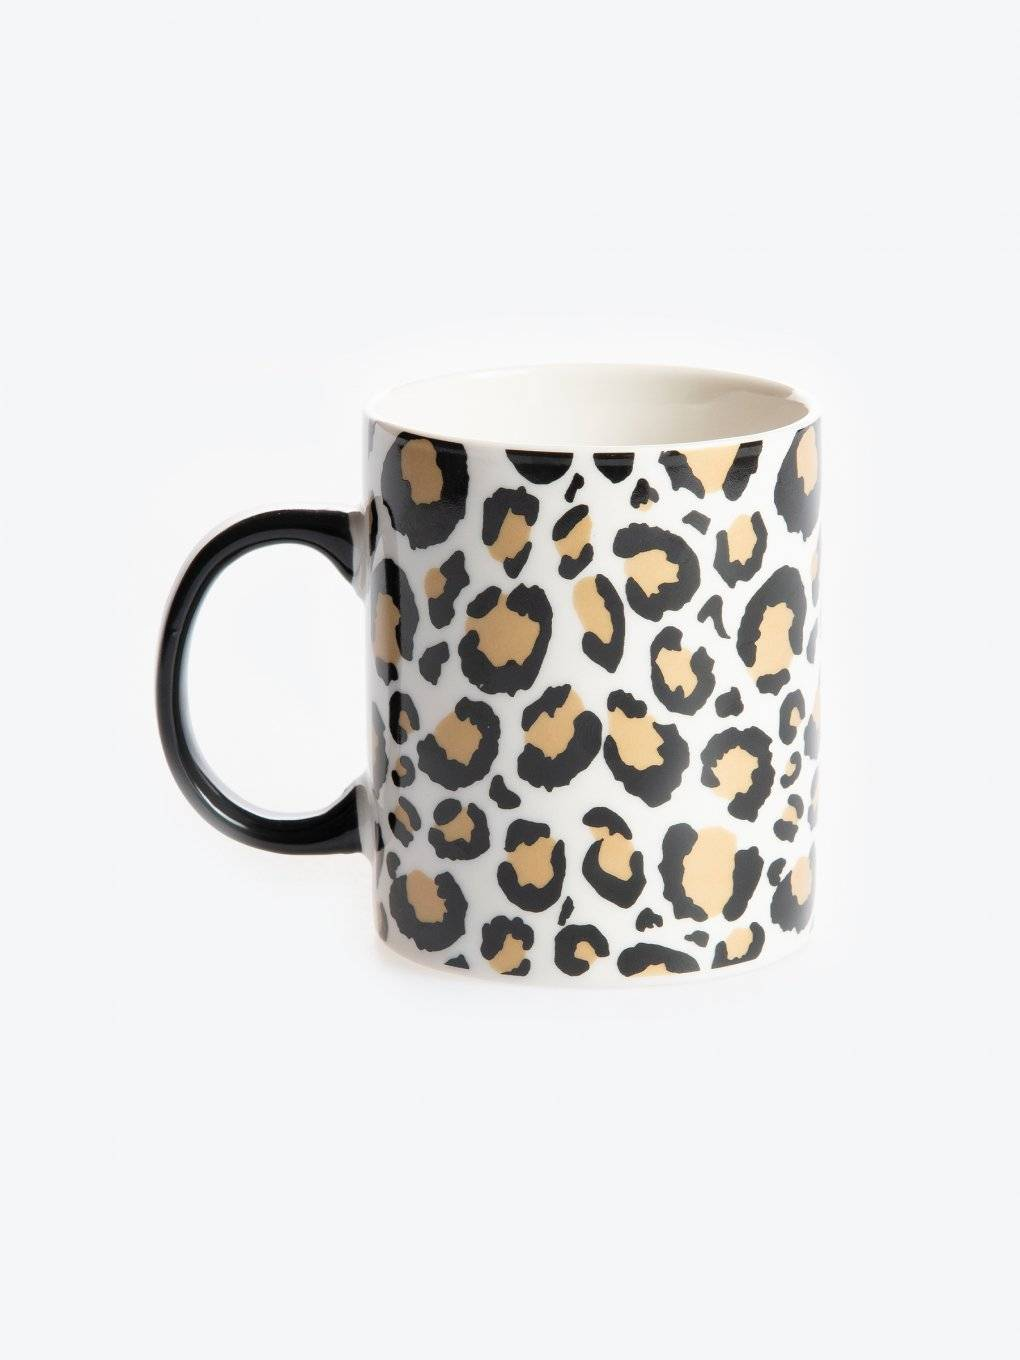 Porcelain mug with animal design